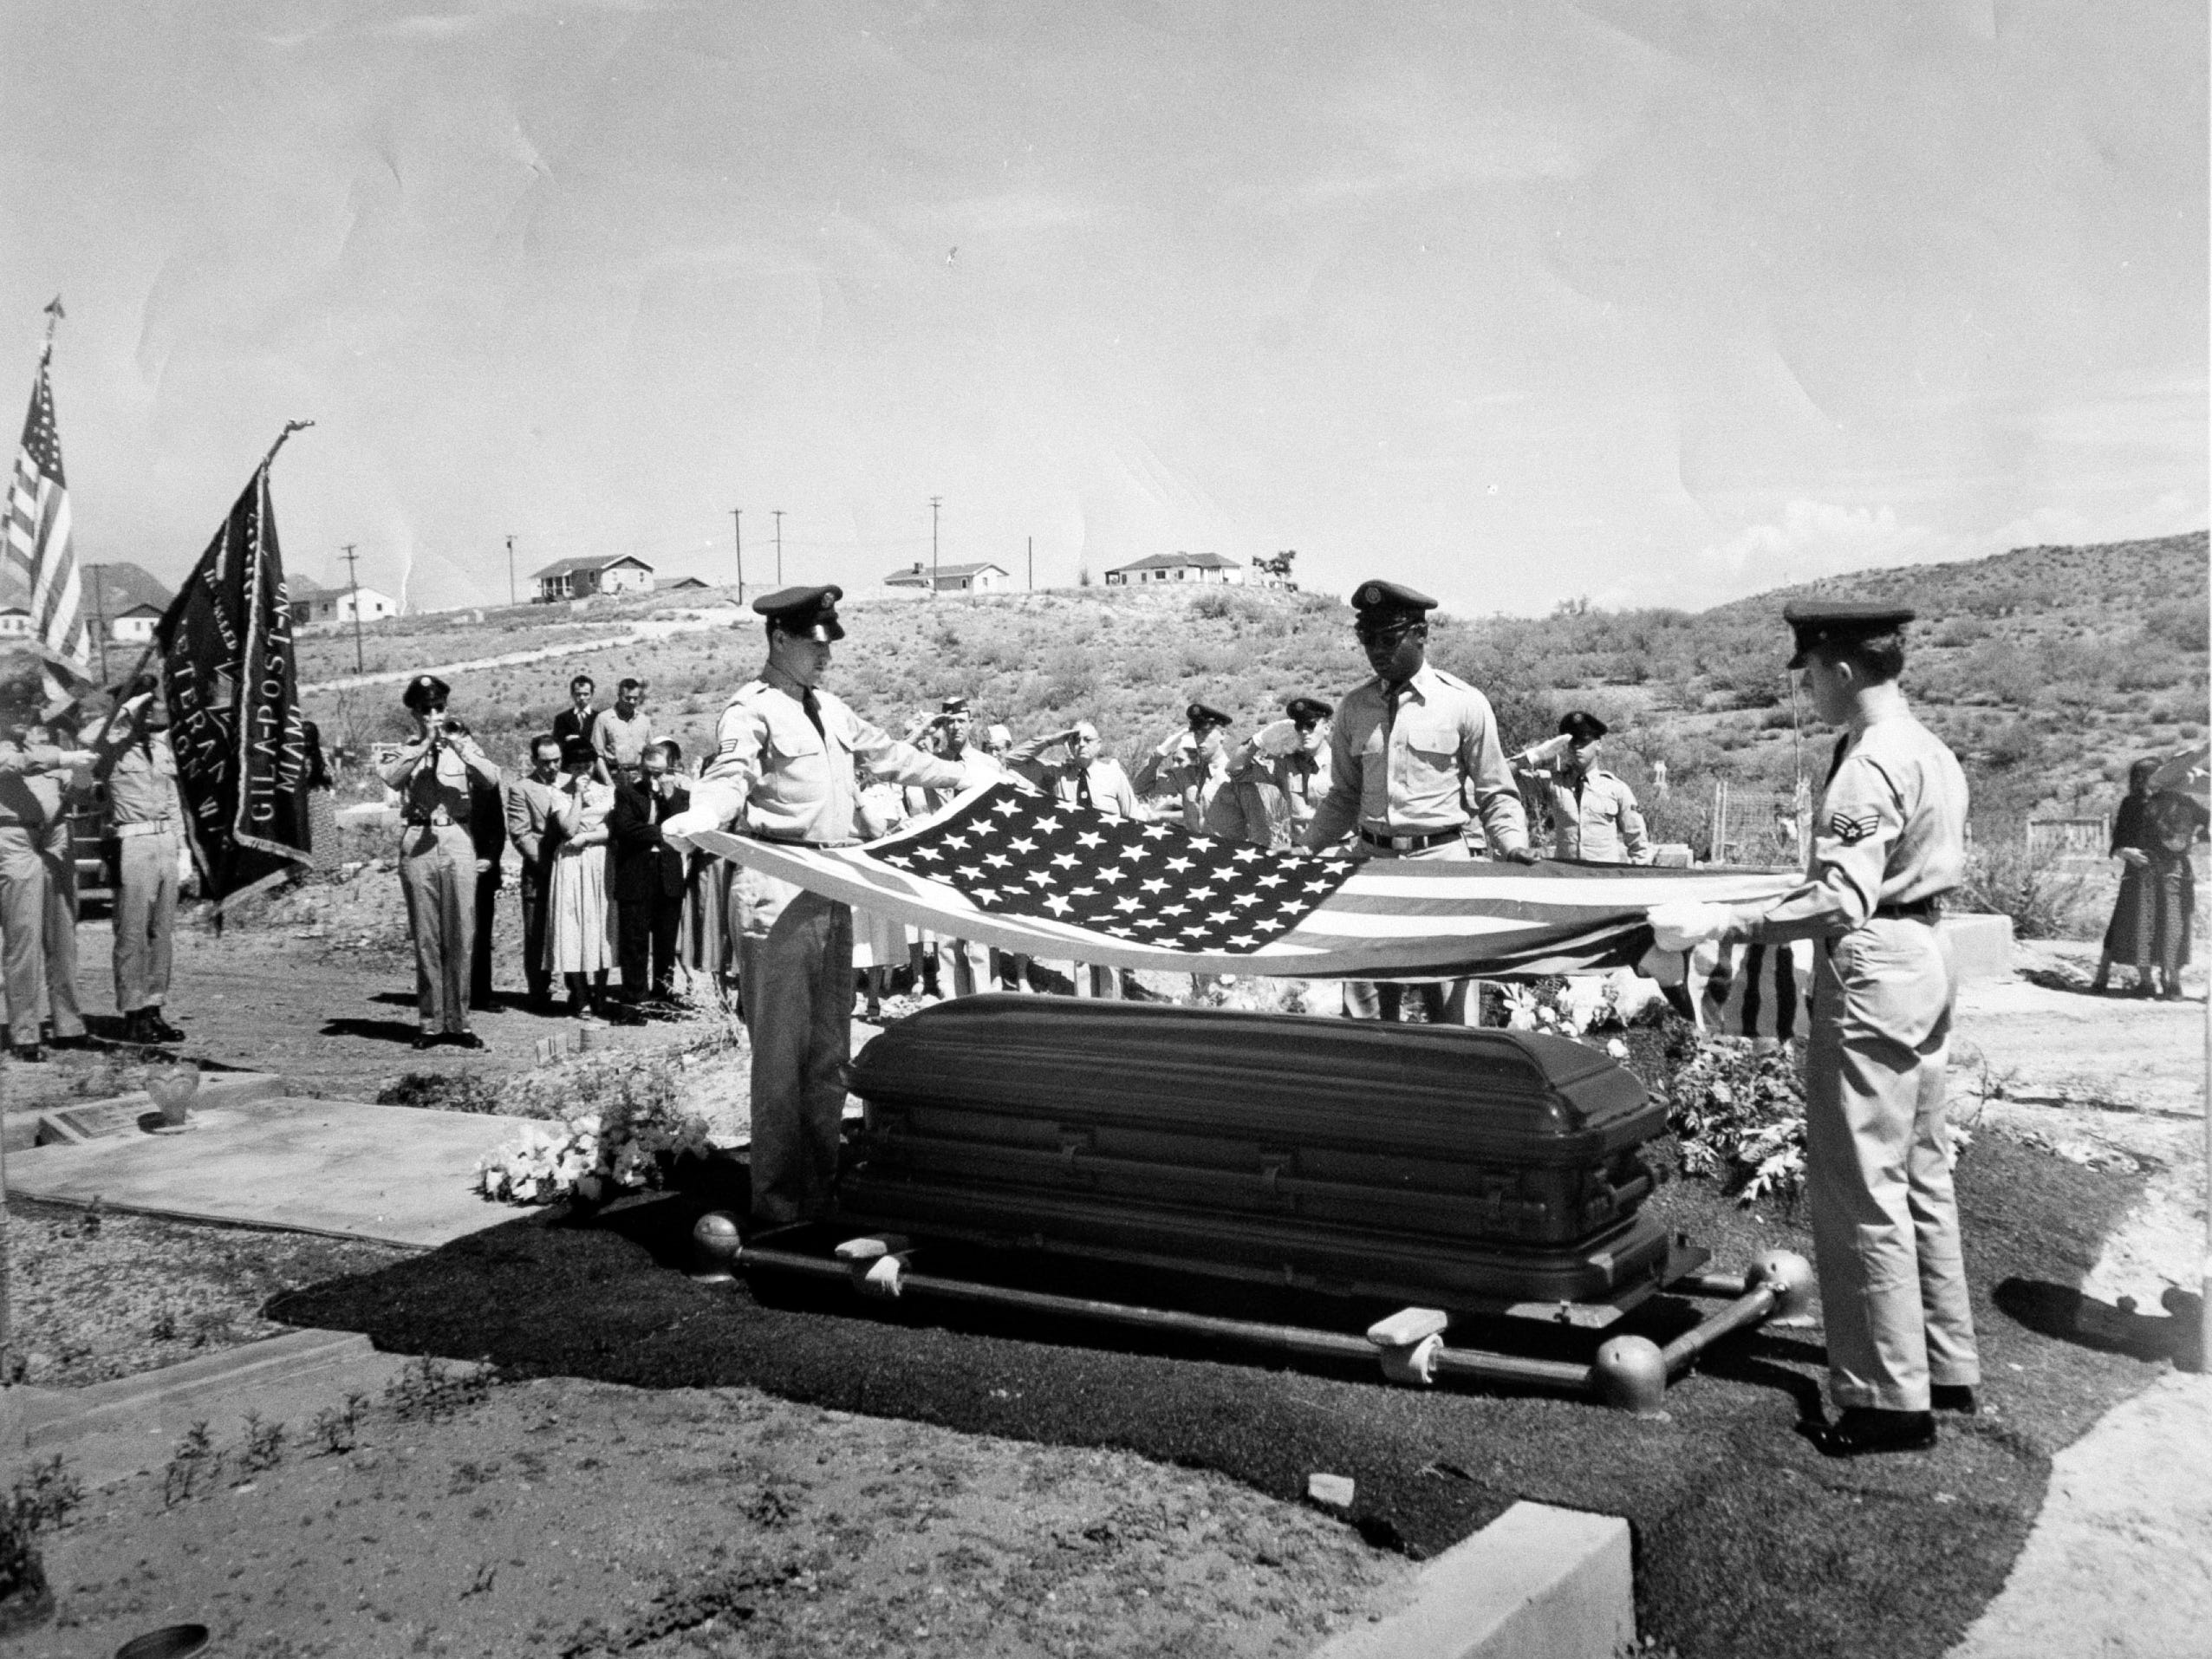 The funeral service for Staff Sgt. Joe Campos in Miami, Ariz., in July of 1953. Campos, a gunner on a B-26 bomber, was likely the first American killed in the Korean War when his plane went down in the Yellow Sea on June 28, 1950. It took nearly three years for his remains to be found and identified so he could receive a proper burial.